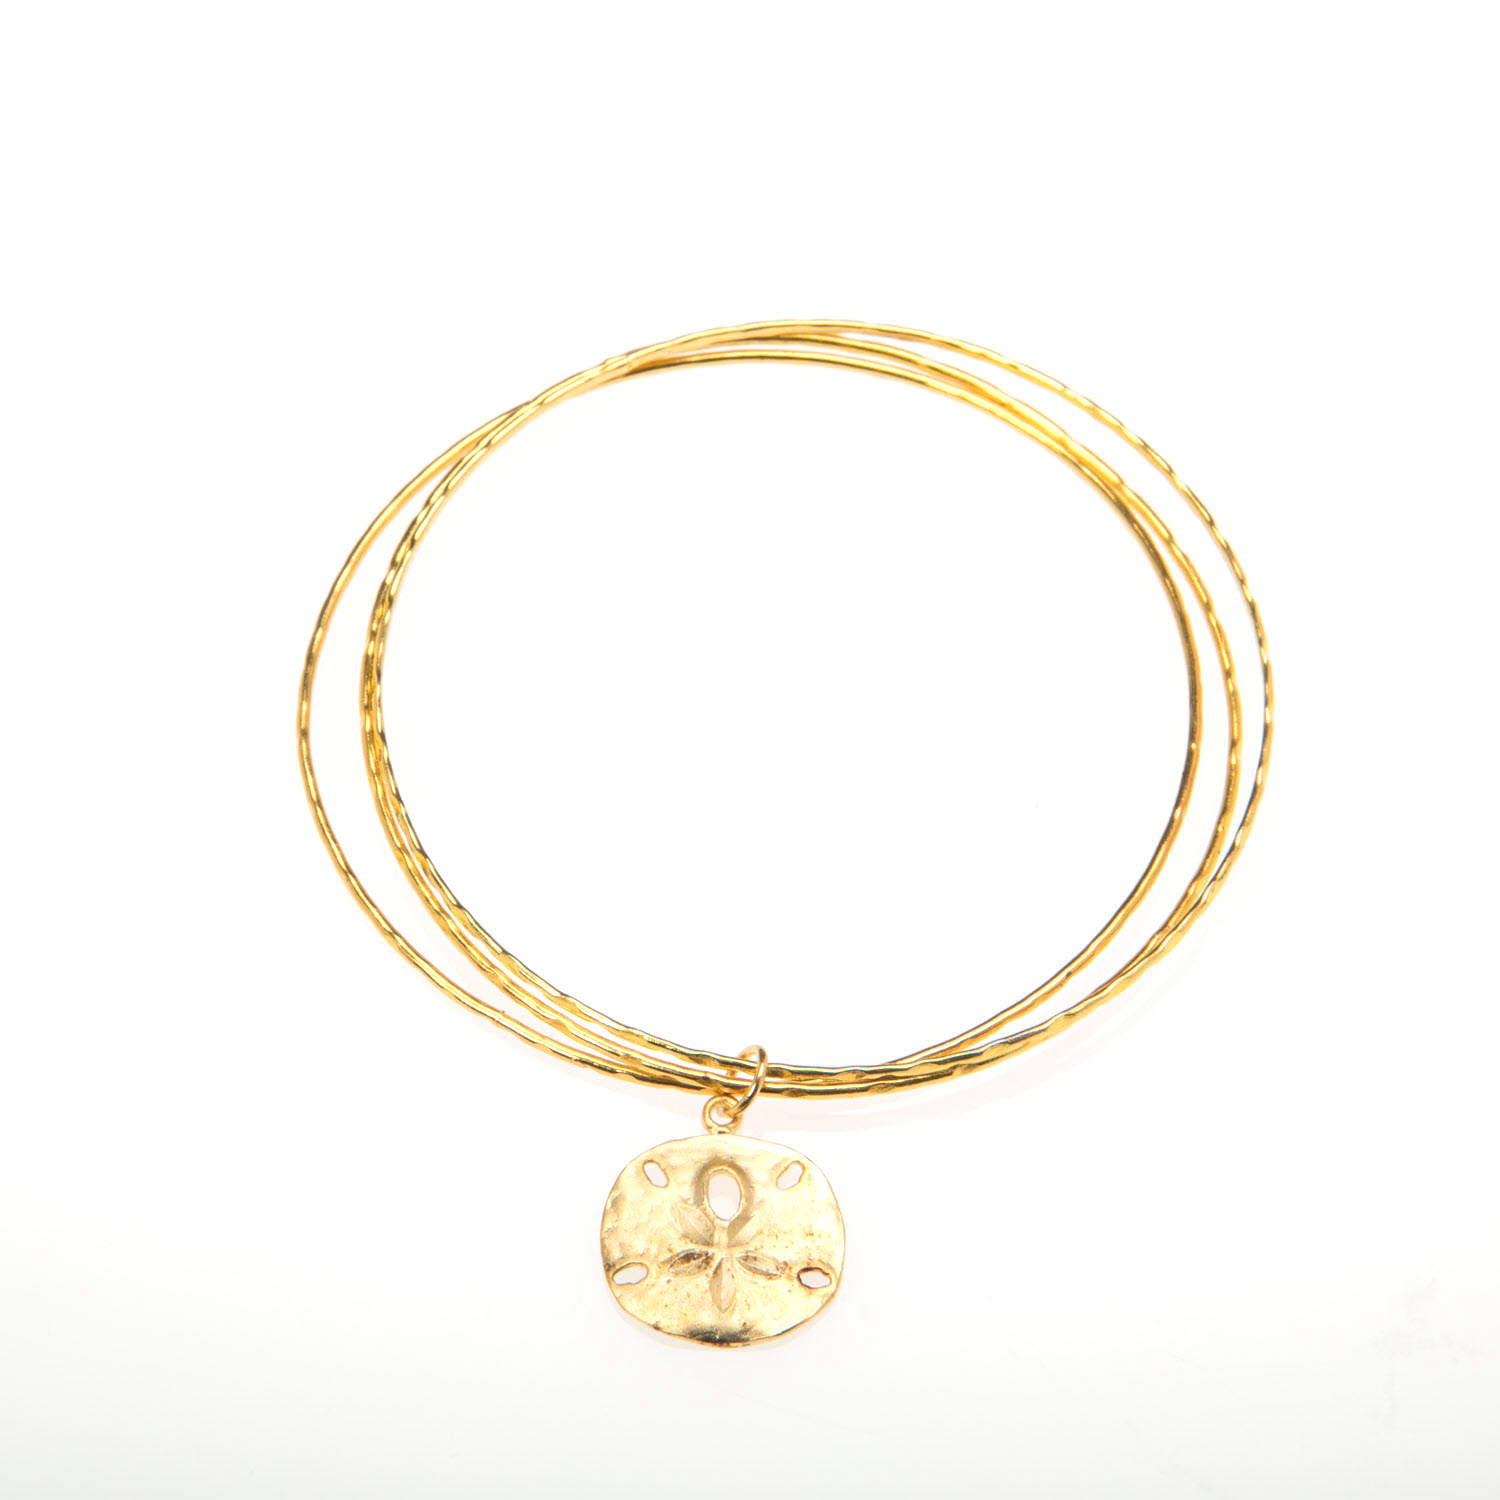 Gold Bangles with Gold Vermeil Sand Dollar Charm